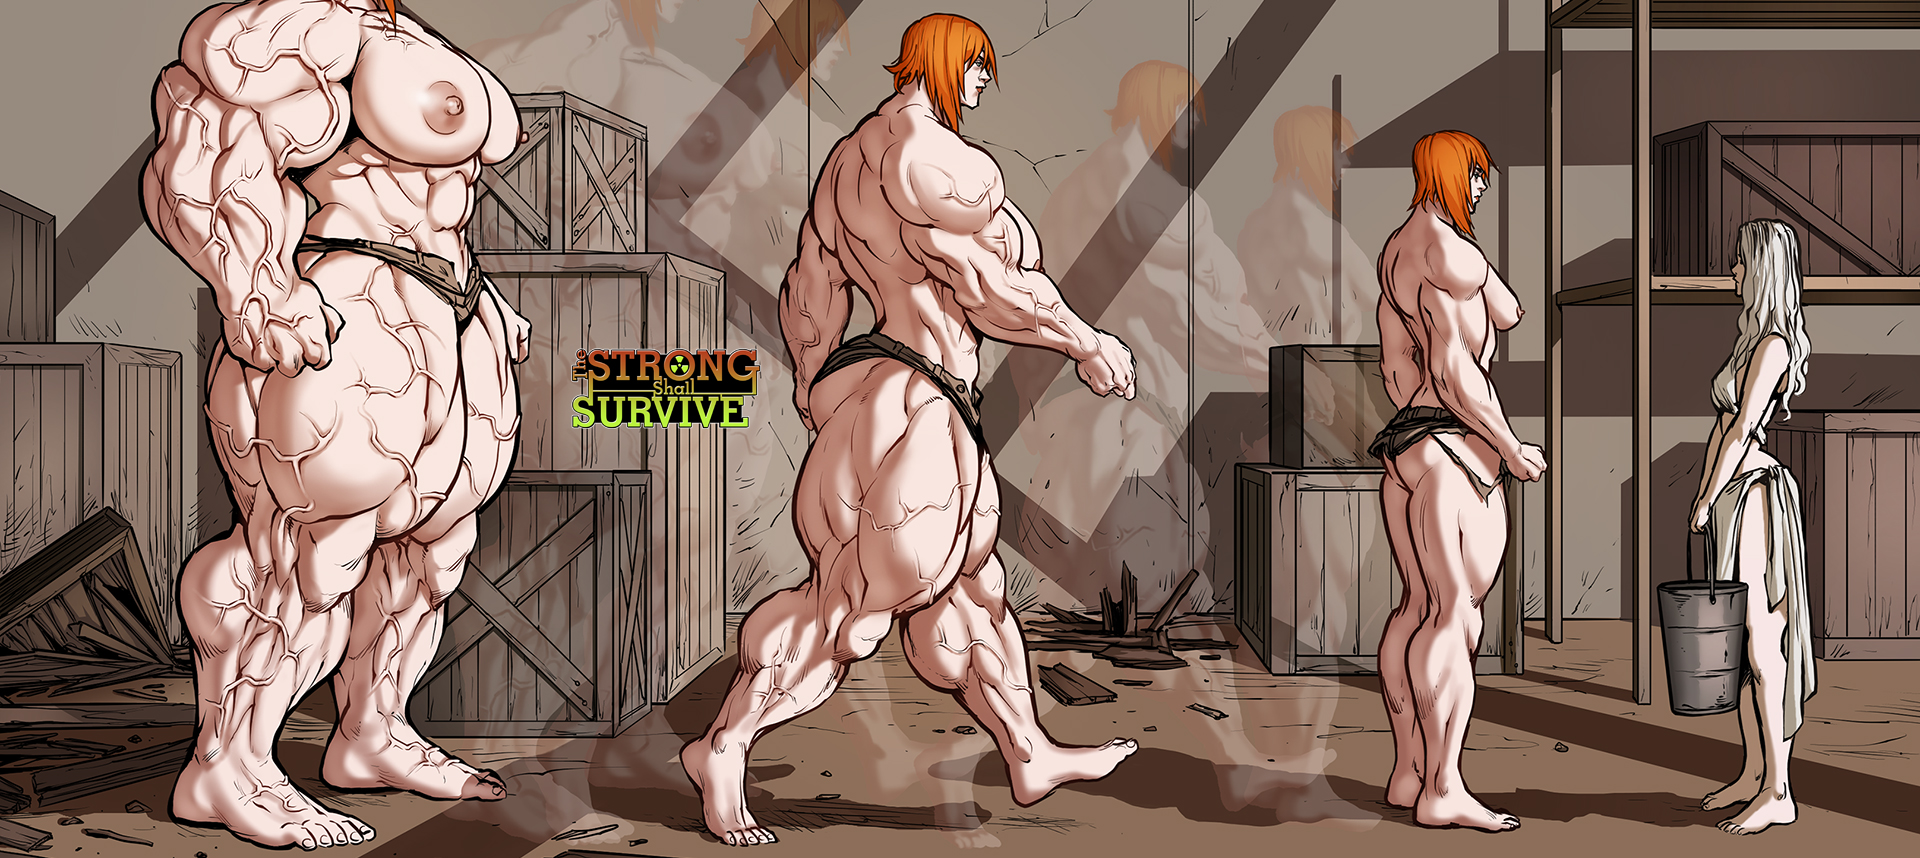 The-Strong-Shall-Survive_03-SLIDEc